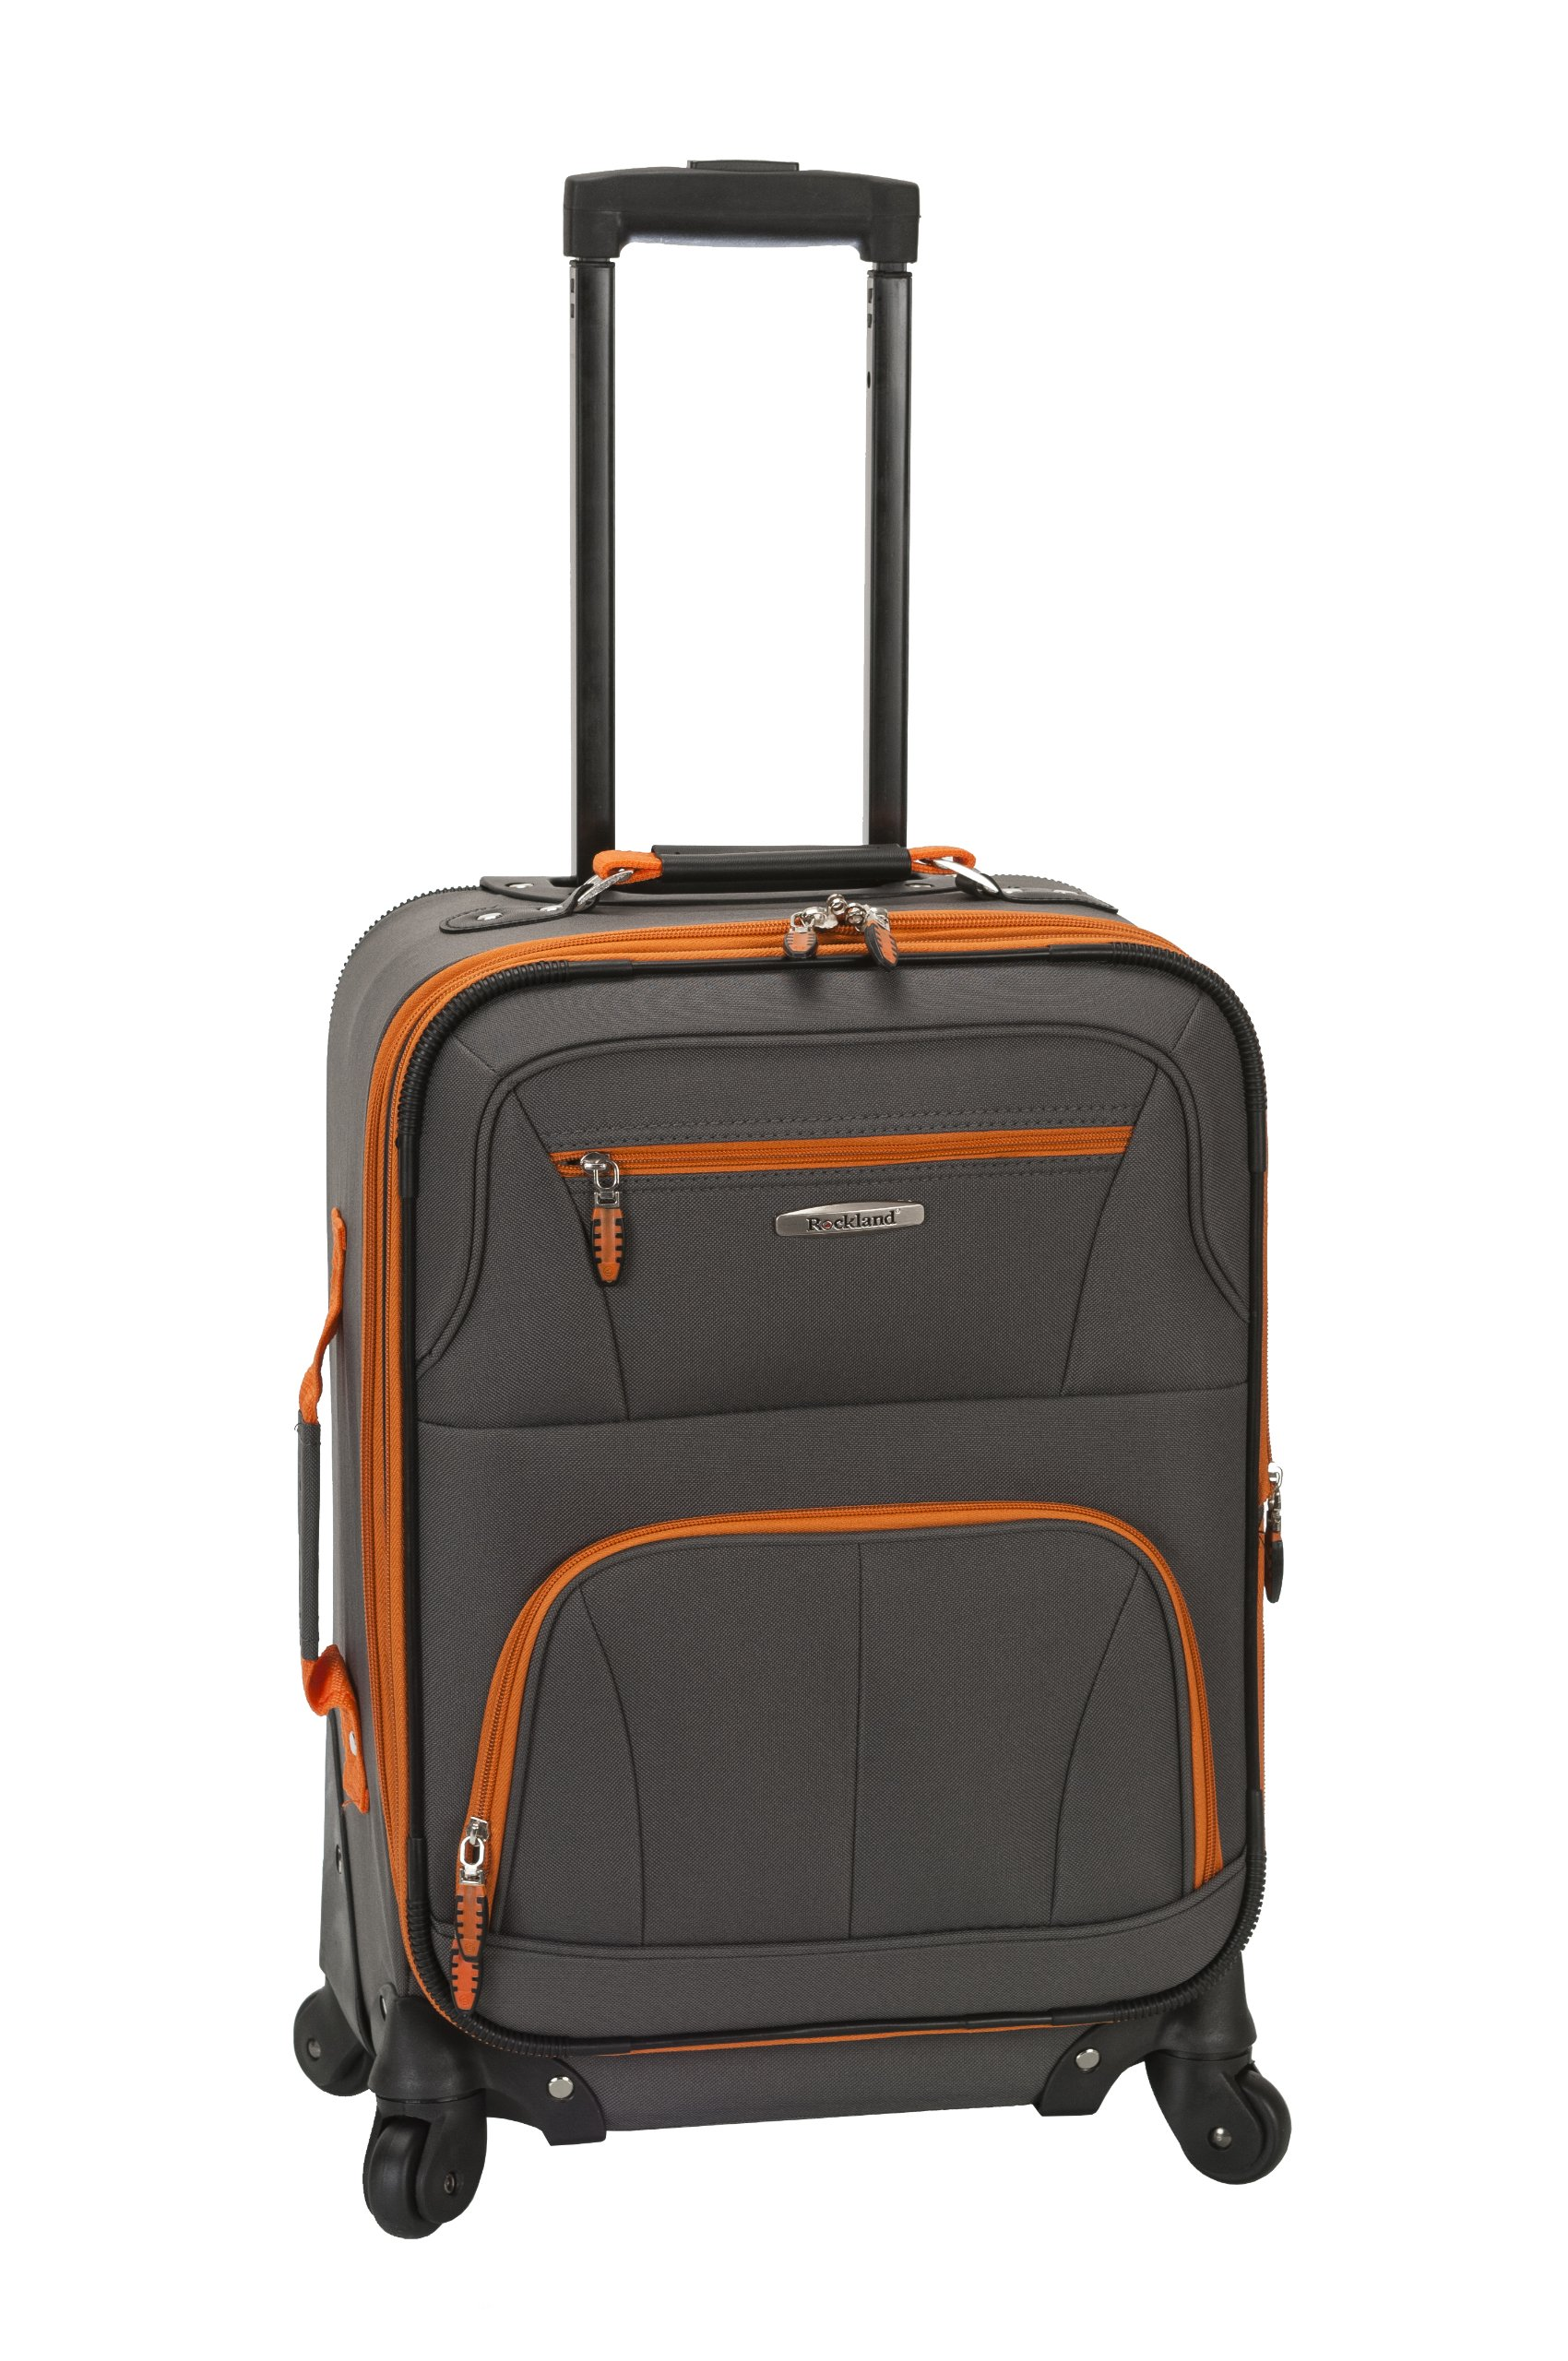 Rockland Luggage Expandable Spinner Charcoal